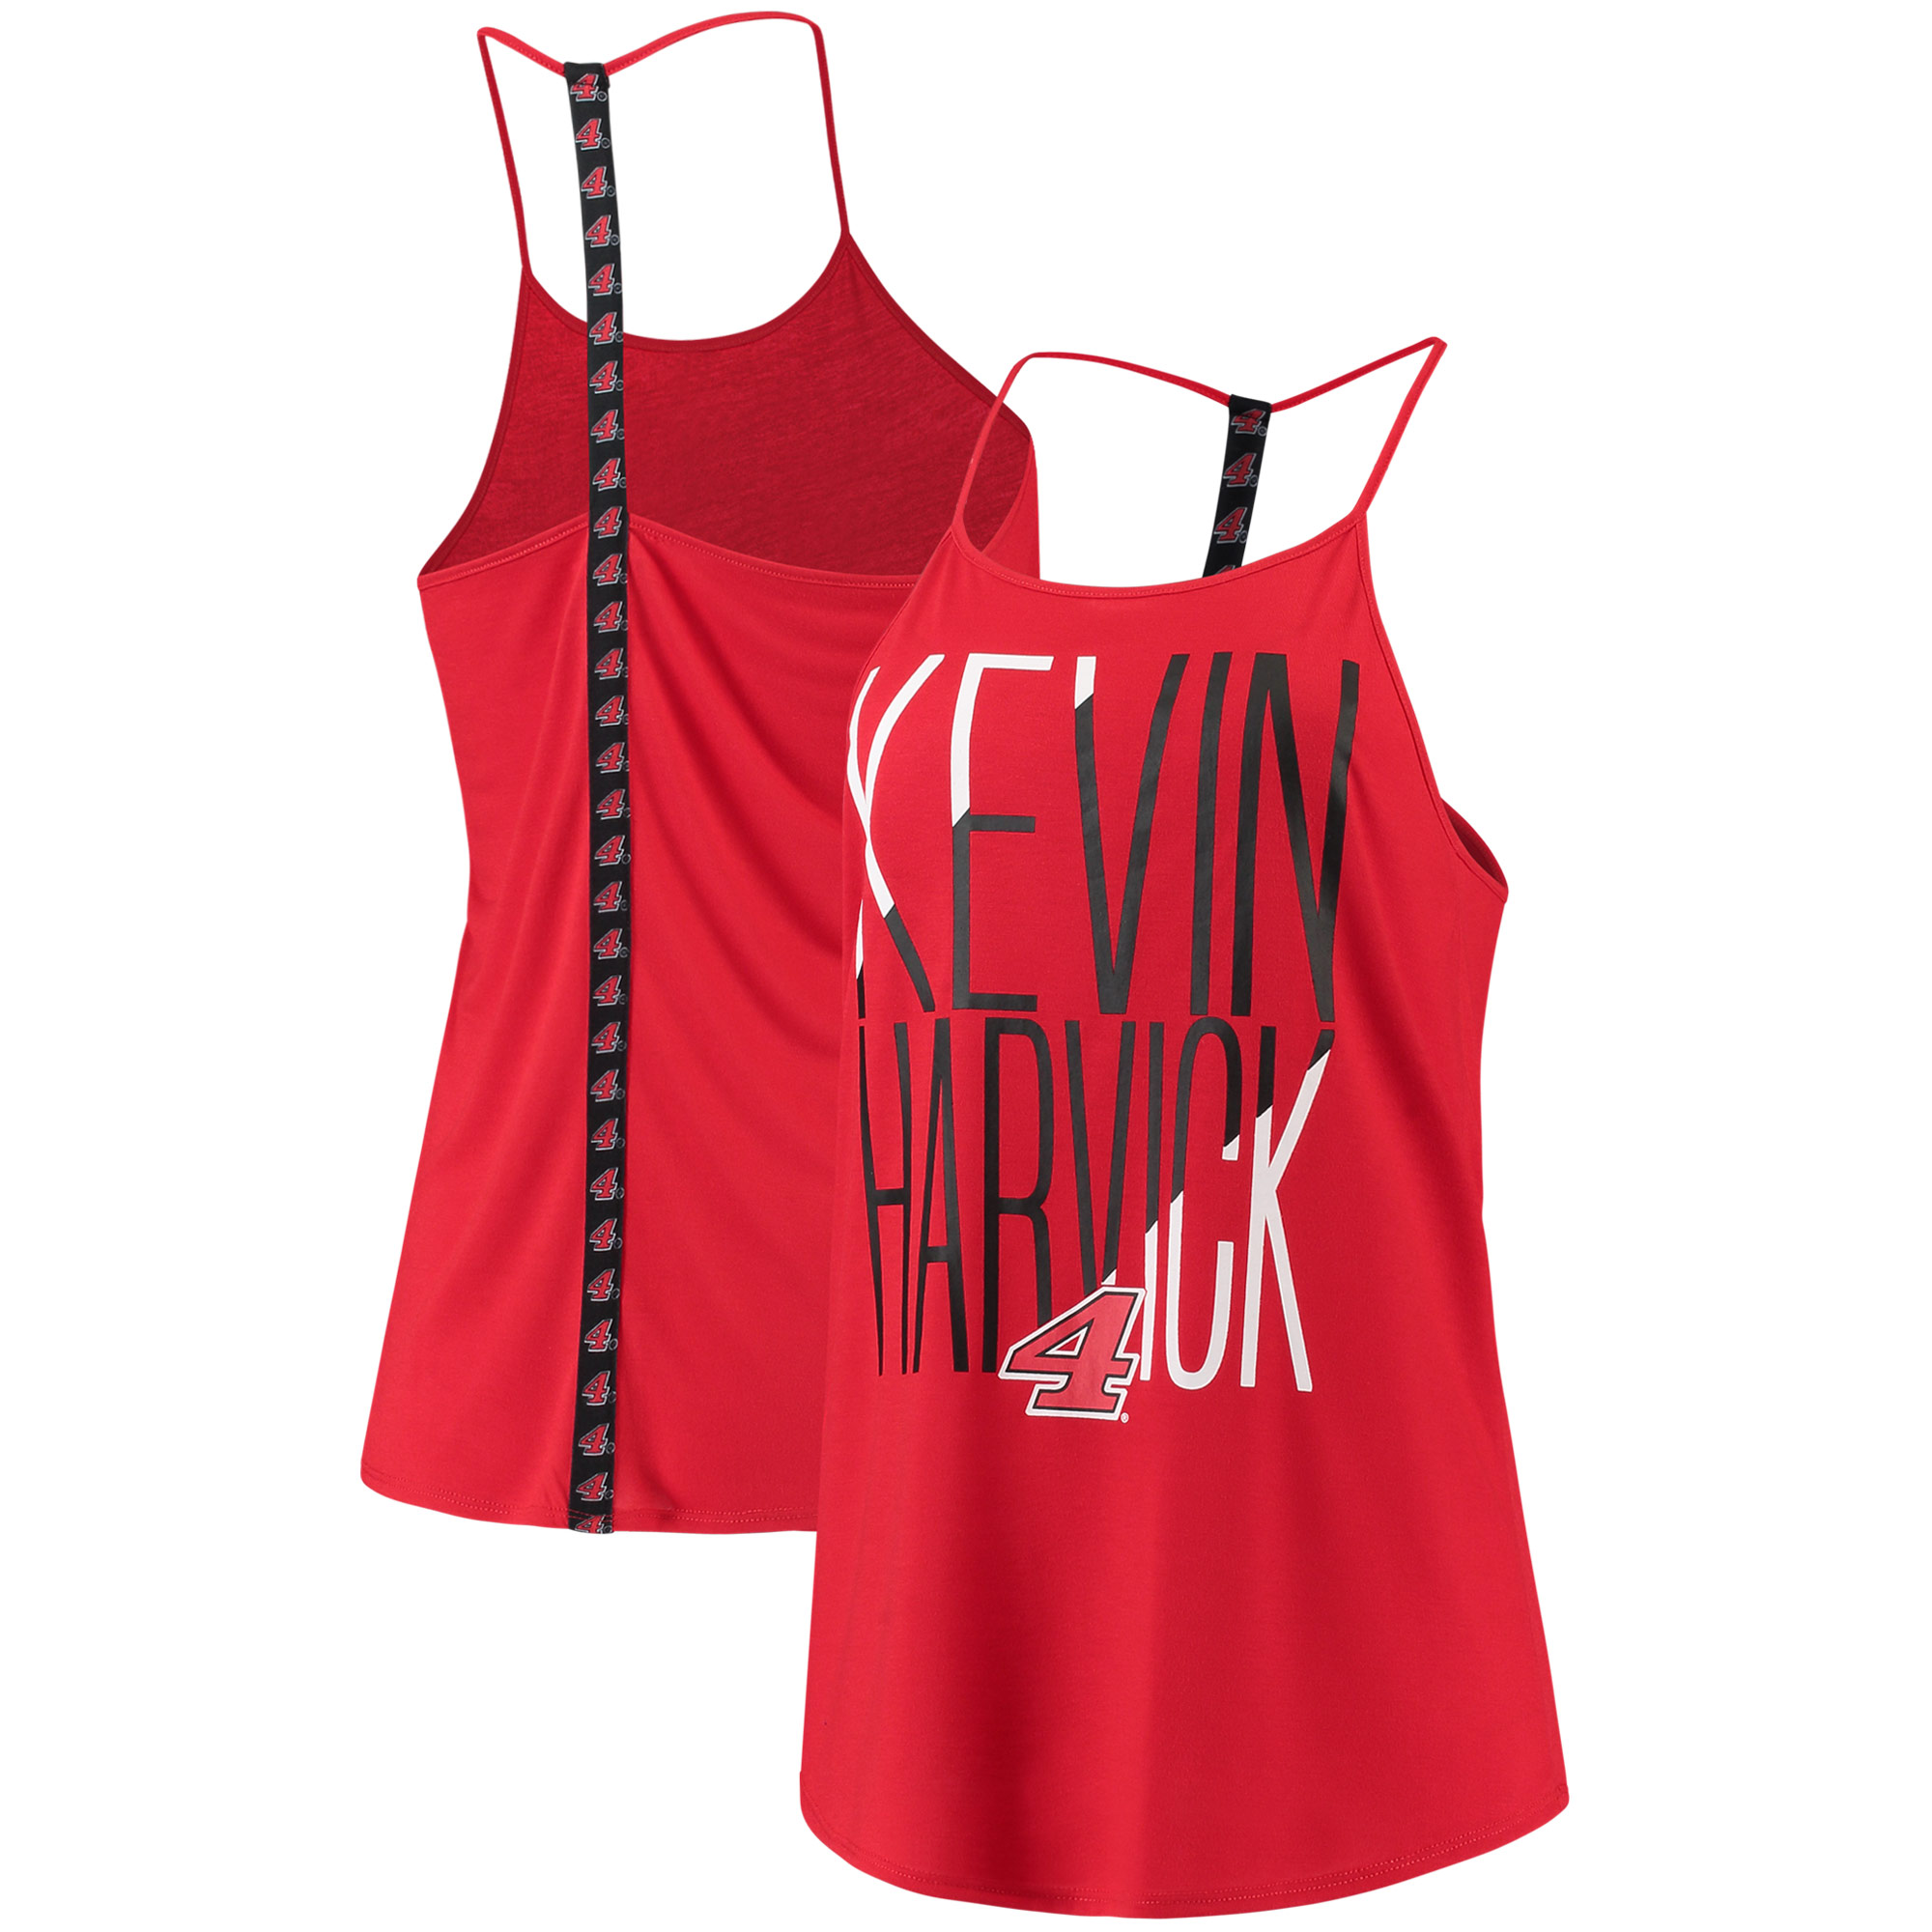 Kevin Harvick Concepts Sport Women's Tempo Tank Top - Red/Black